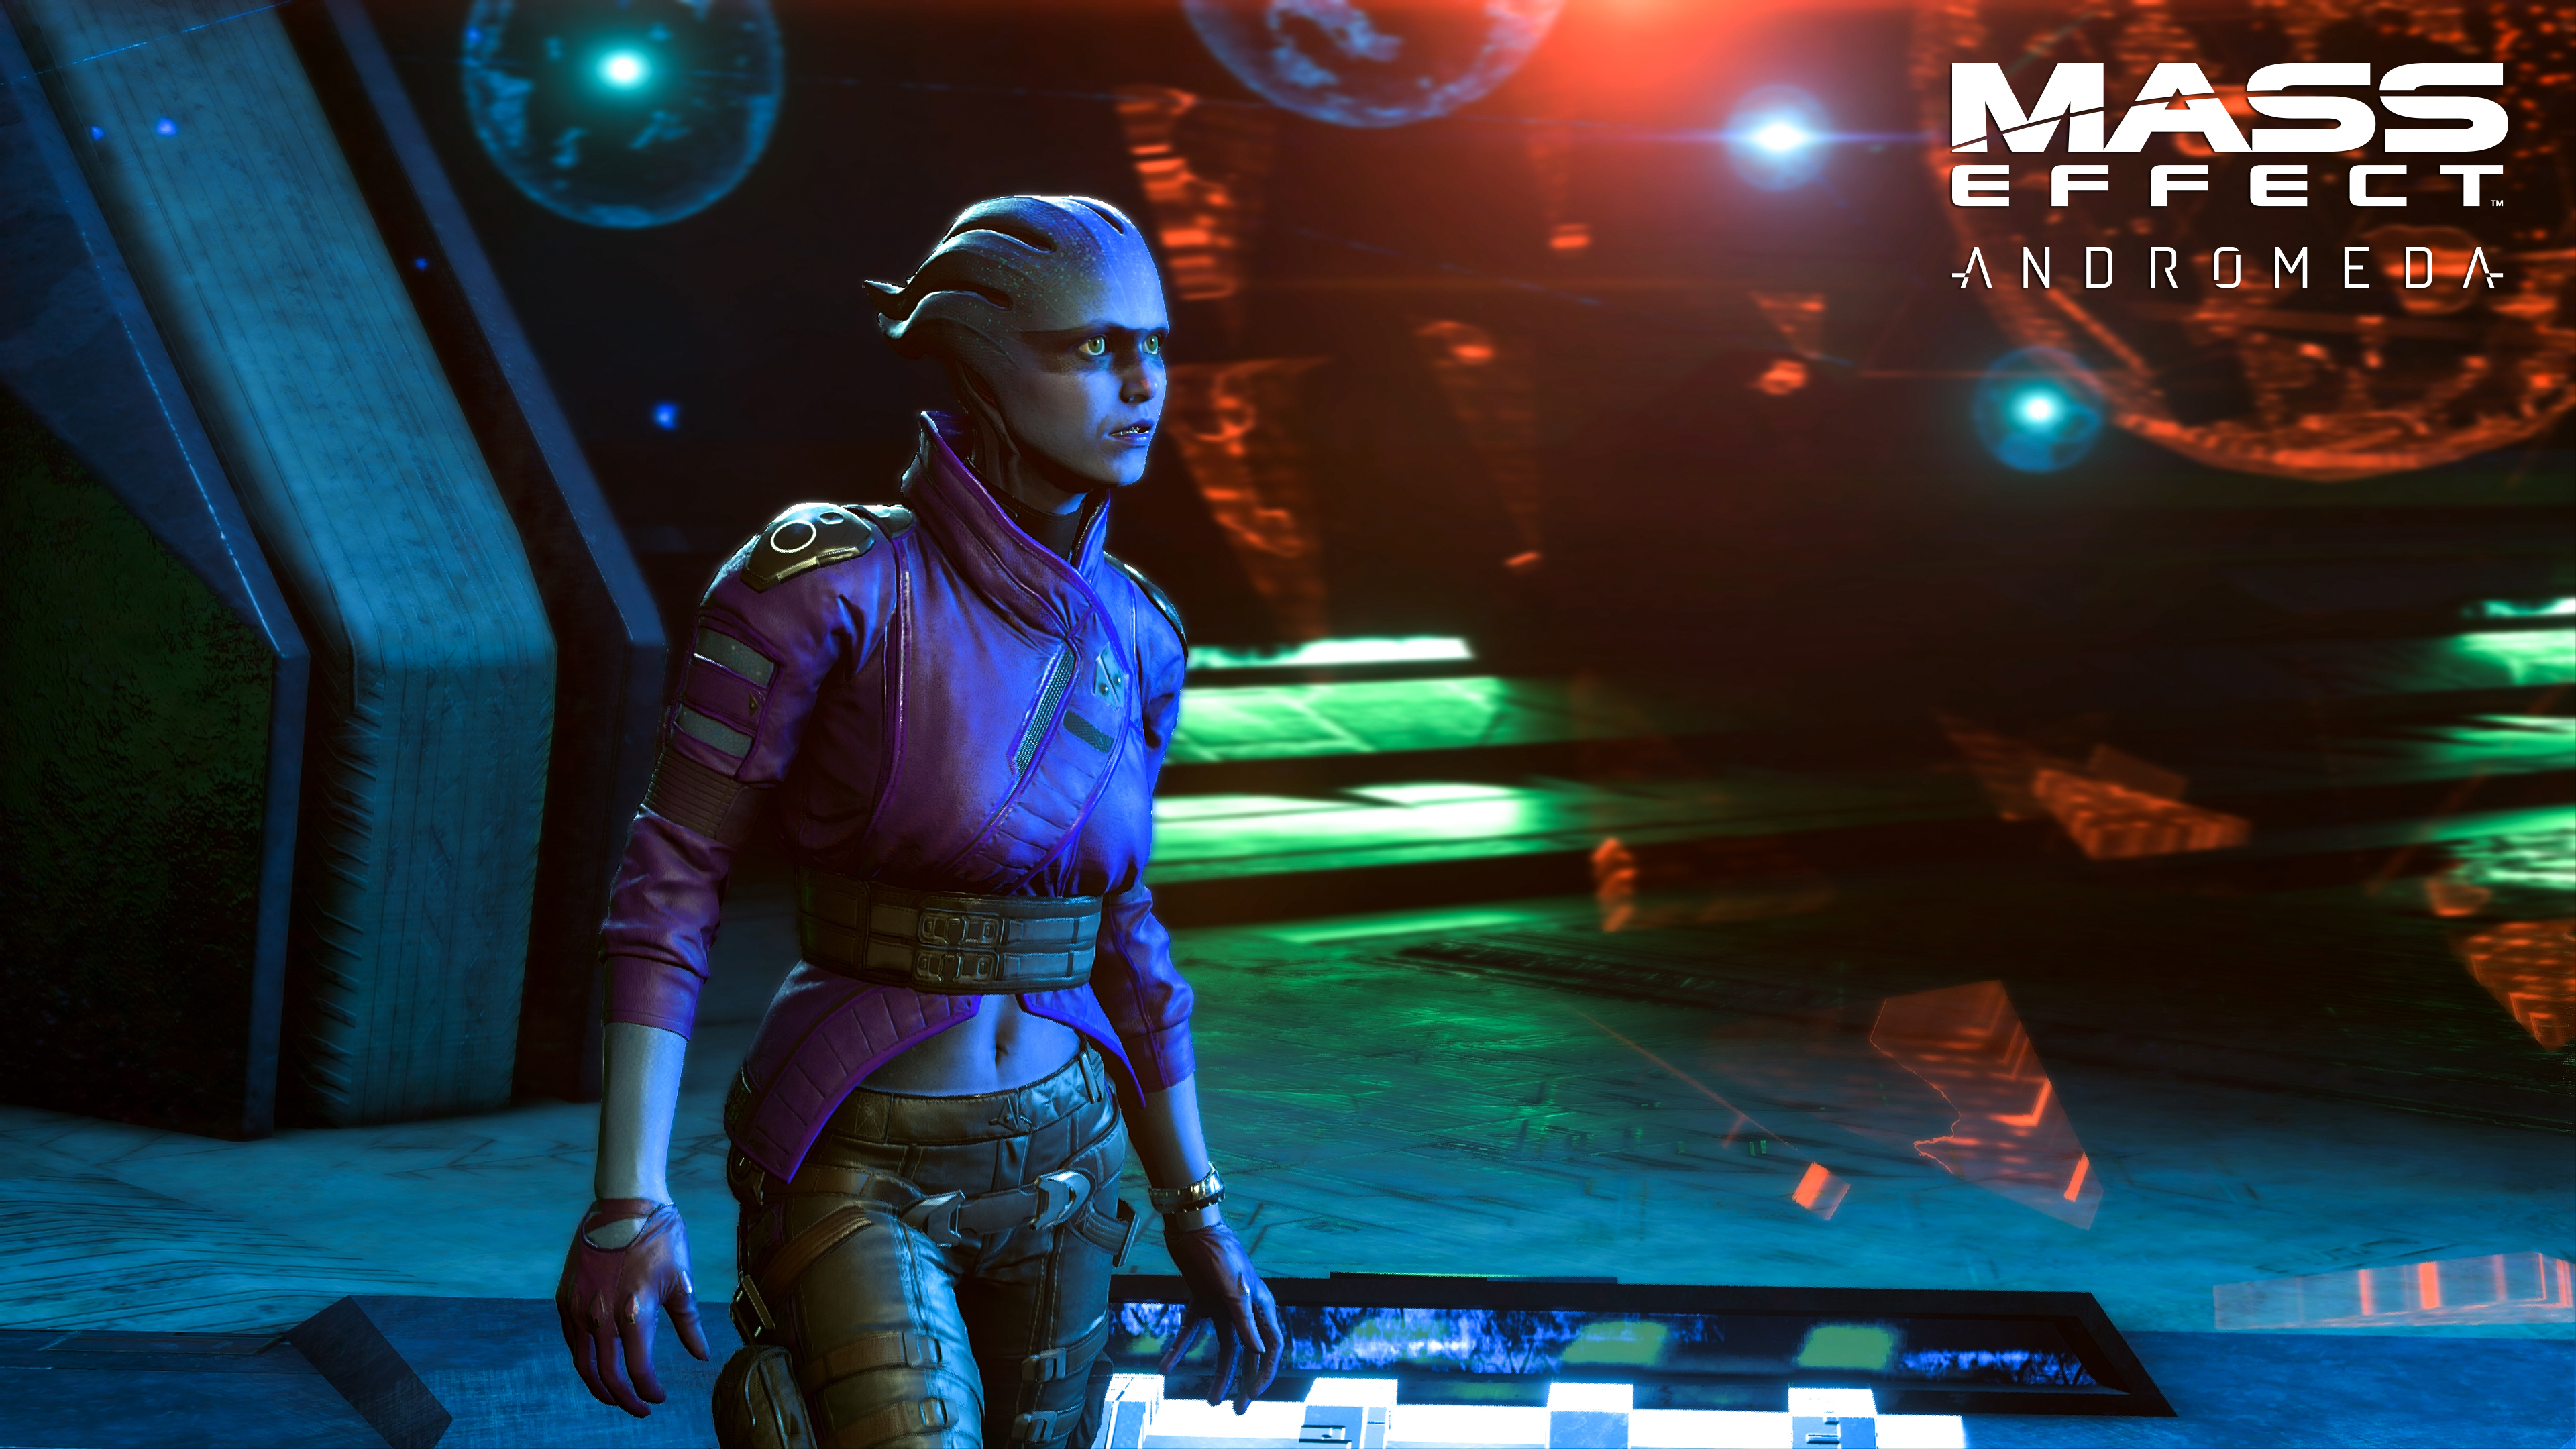 No launch day patch for stiff Mass Effect: Andromeda animations